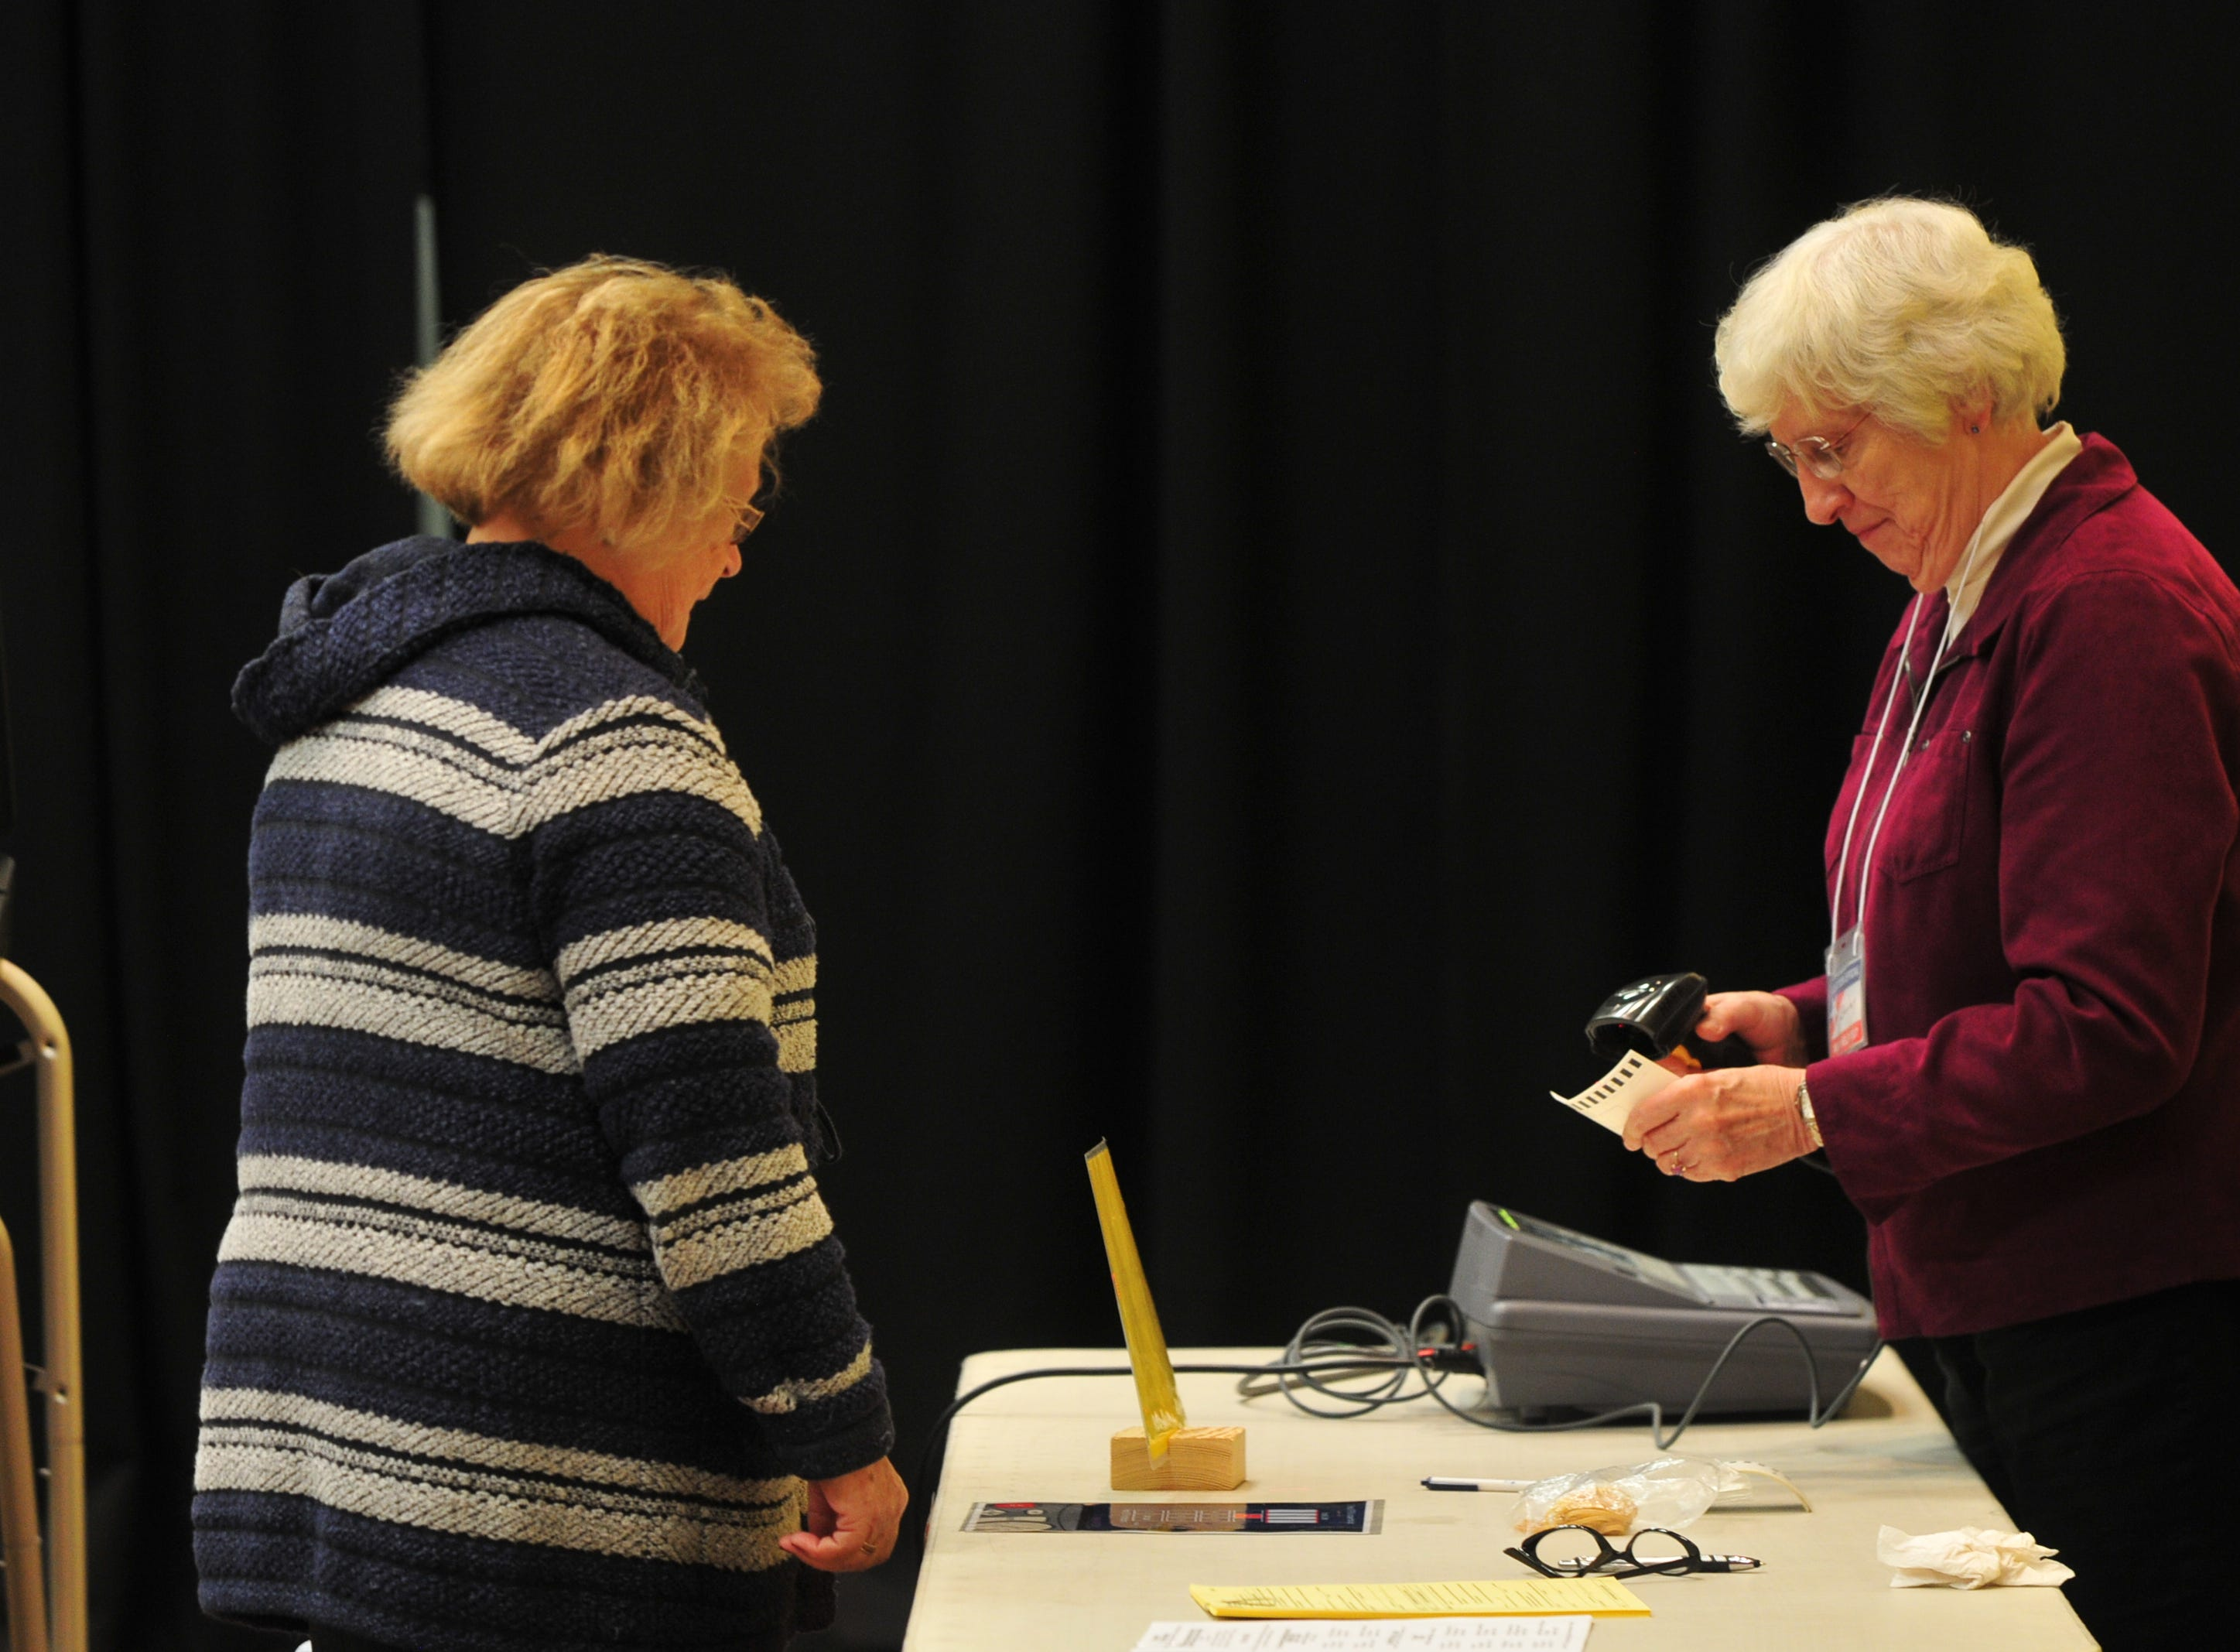 Voters cast their ballots at the Fountain City Wesleyan Church vote center on Election Day, Nov. 6, 2018.